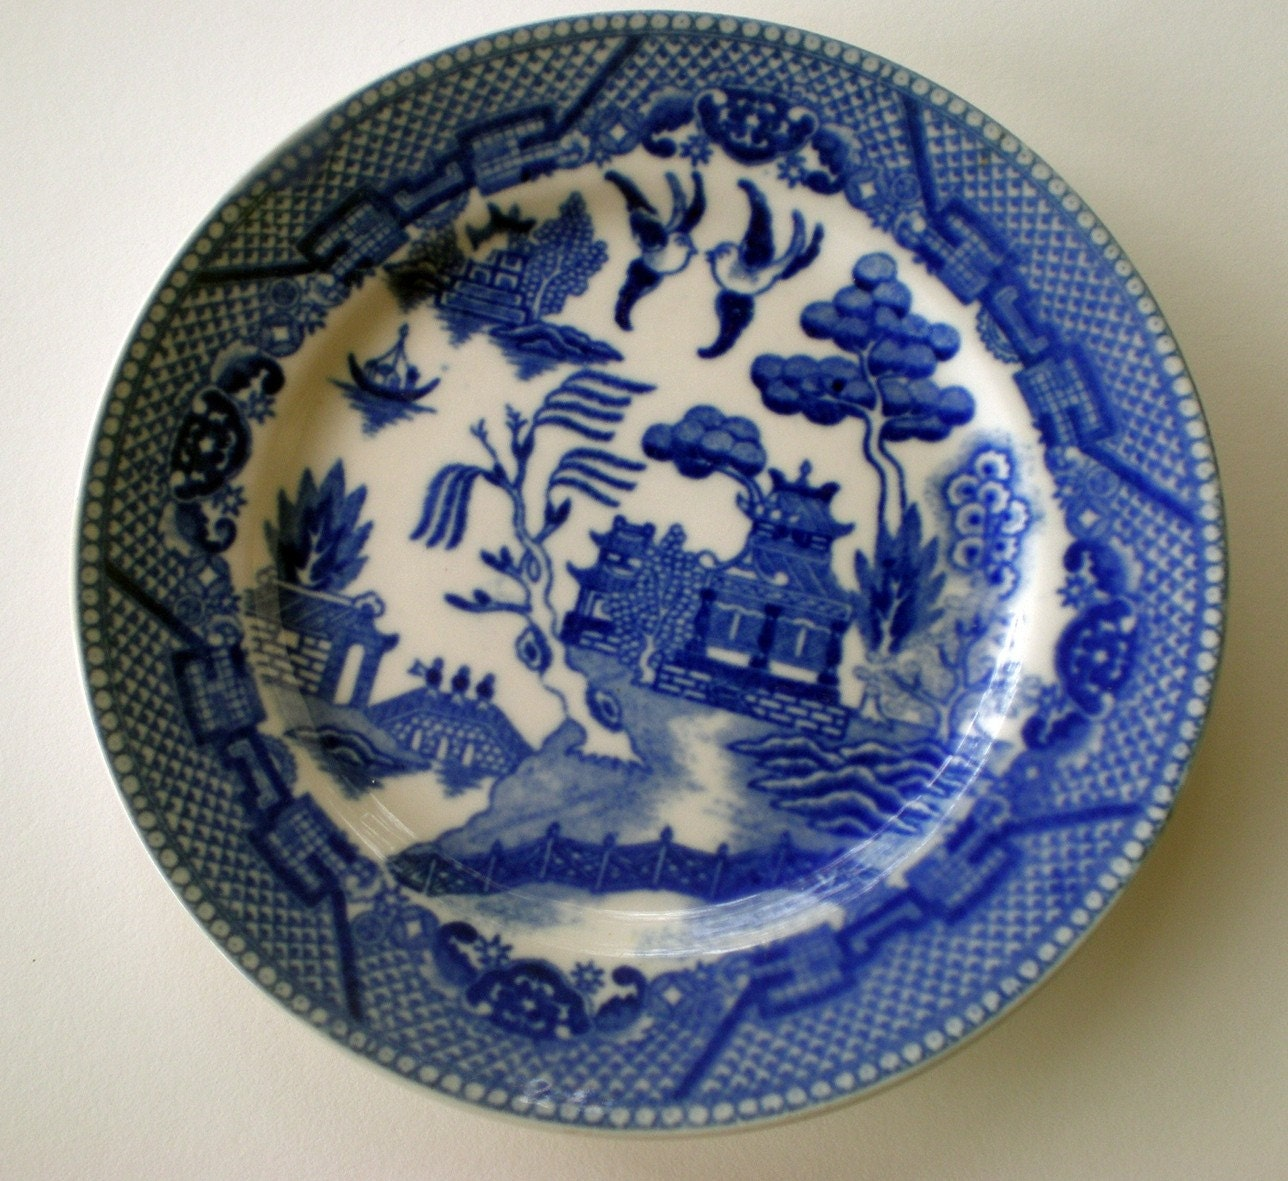 Vintage Blue Willow Plate Small Dessert Plate 50s Housewares